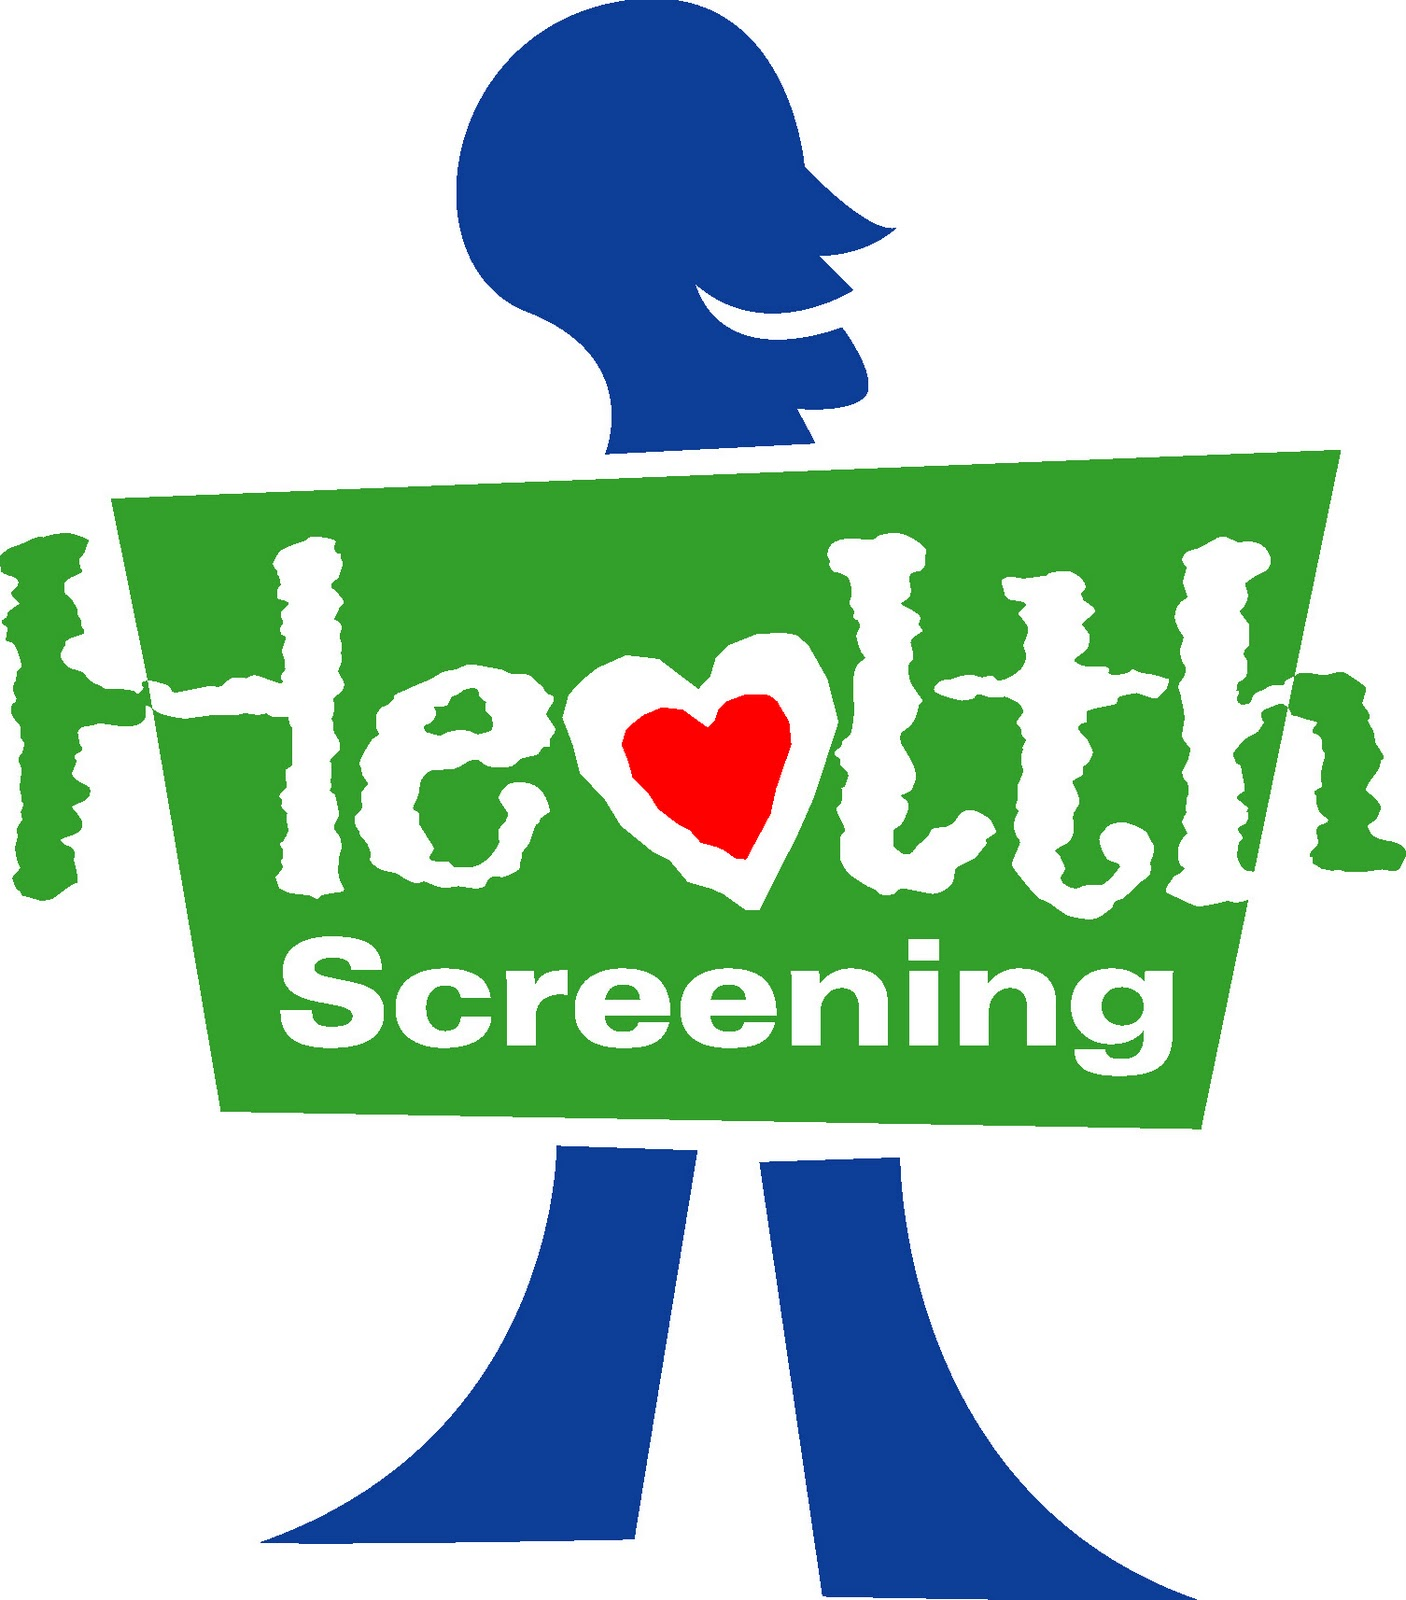 Health Screening Clip Art.